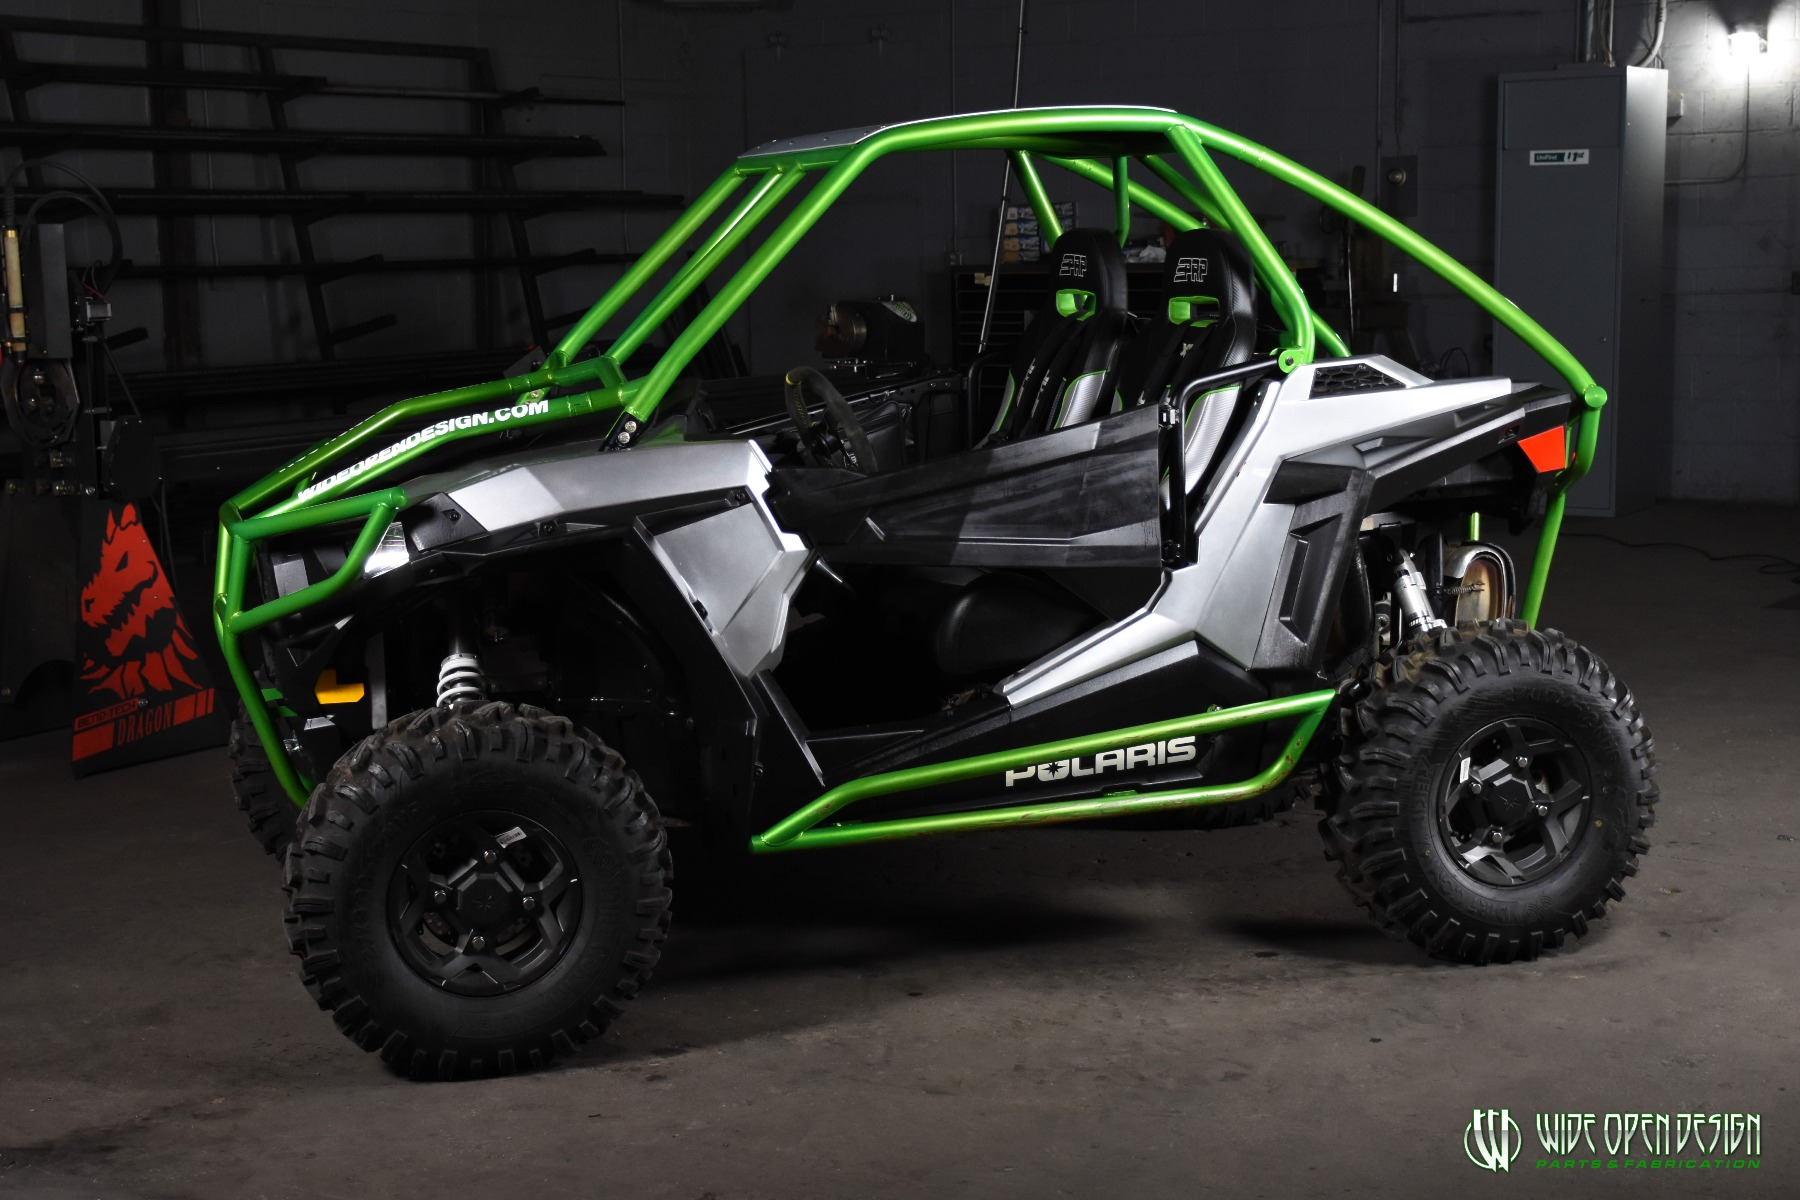 Jason's 1000s RZR with Wide Open Design Rolled Roof Cage, Front Bumper with Tie In, and Rocker Guards 19